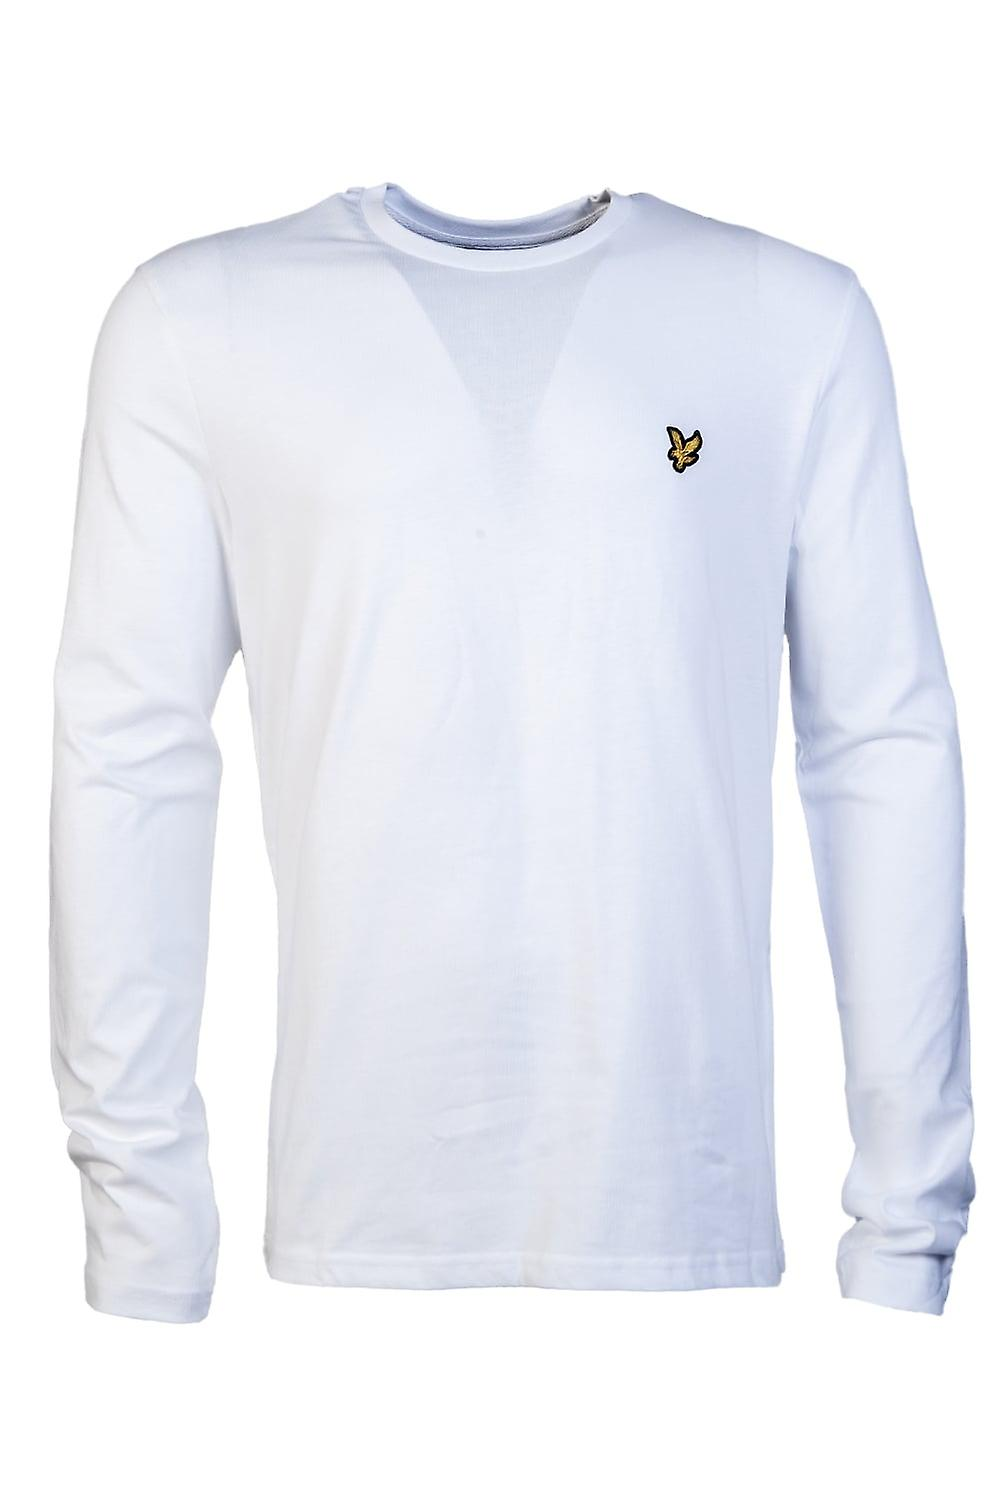 Lyle & Scott Round Neck T Shirt TS512V